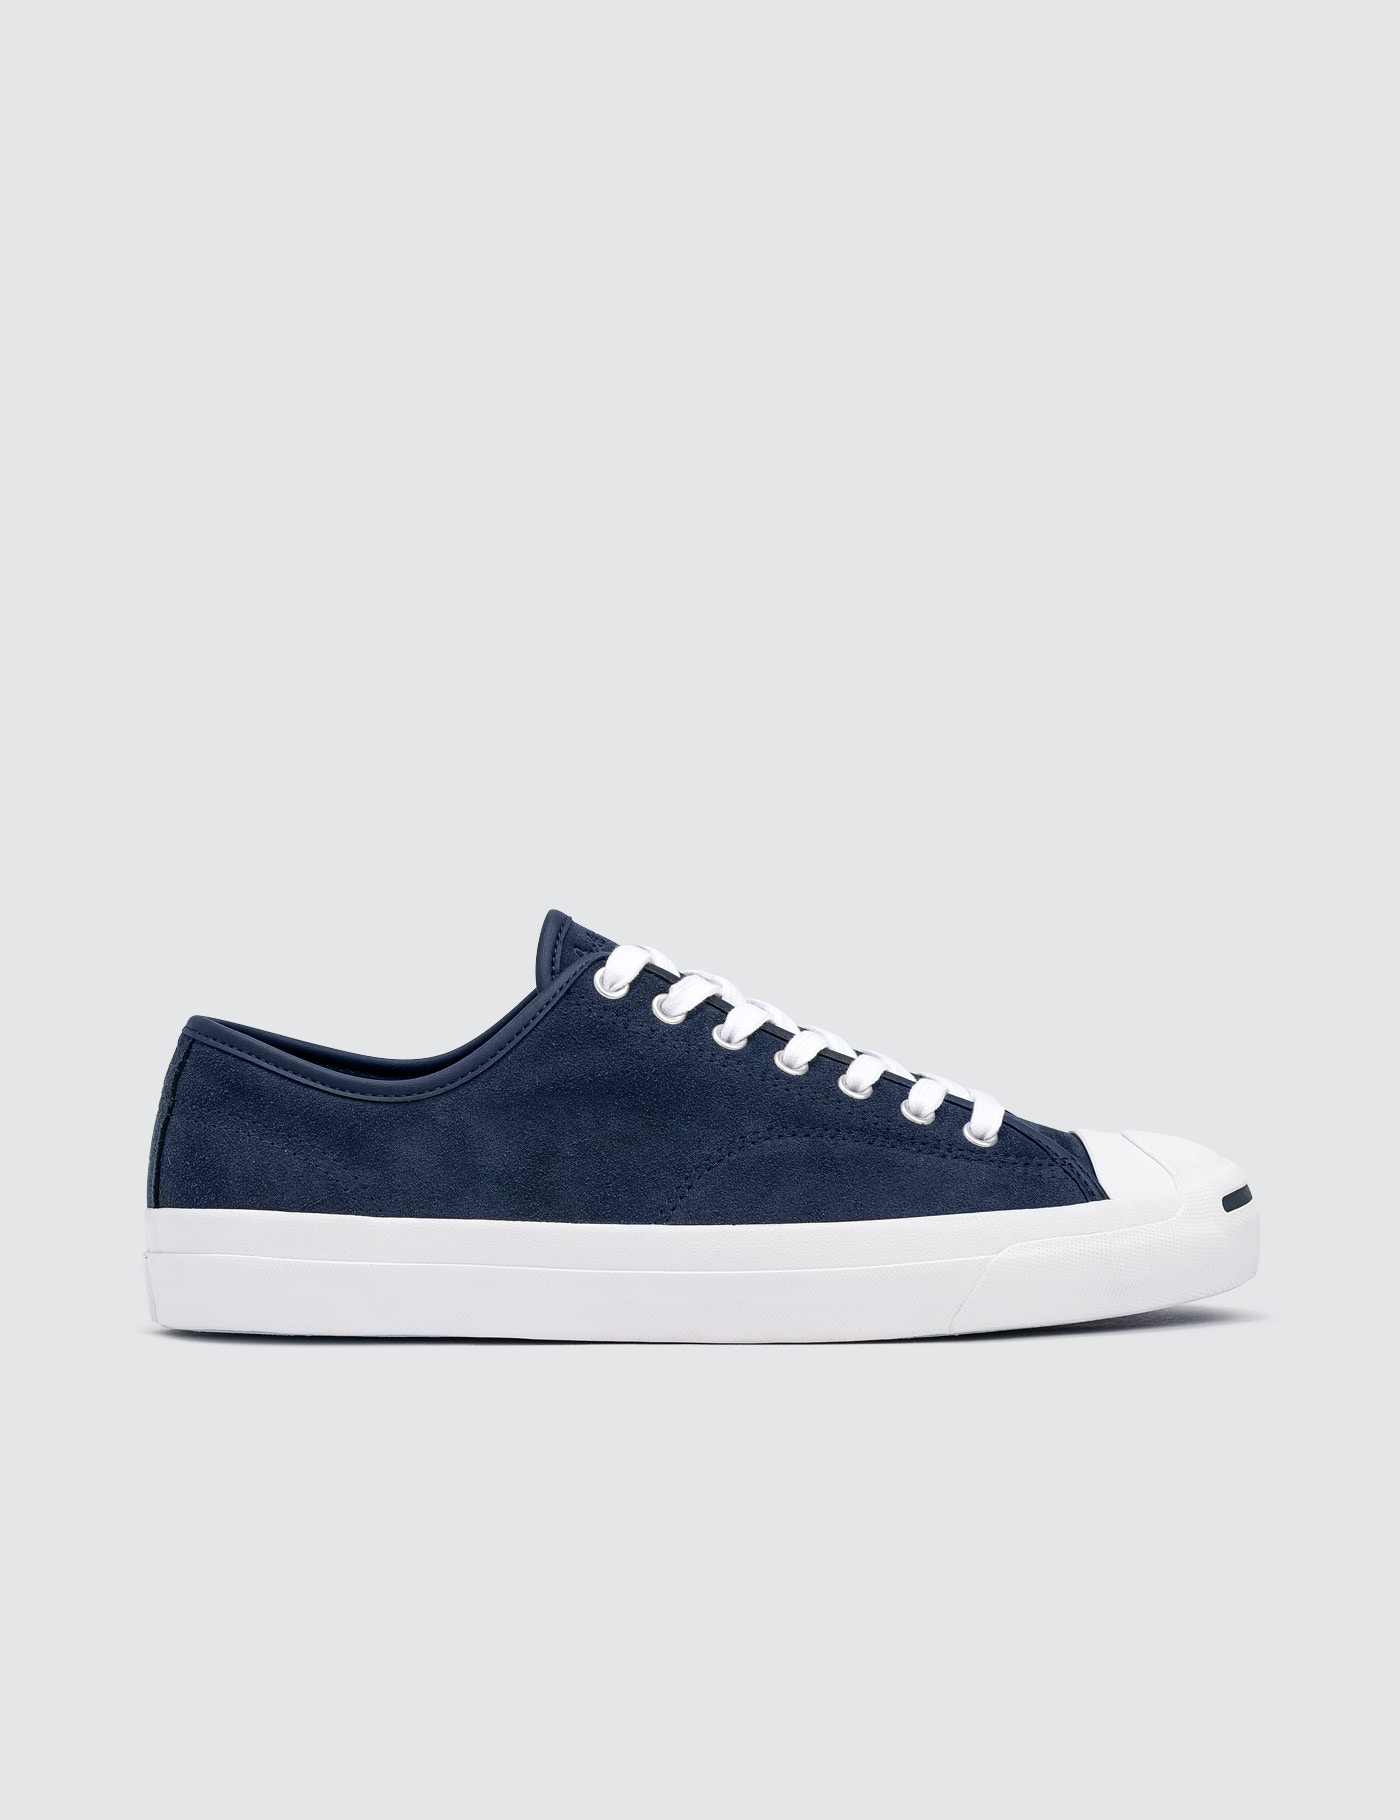 Jual Converse Polar Skate Co. x Jack Purcell Pro - 100% Original ... 31081801f3